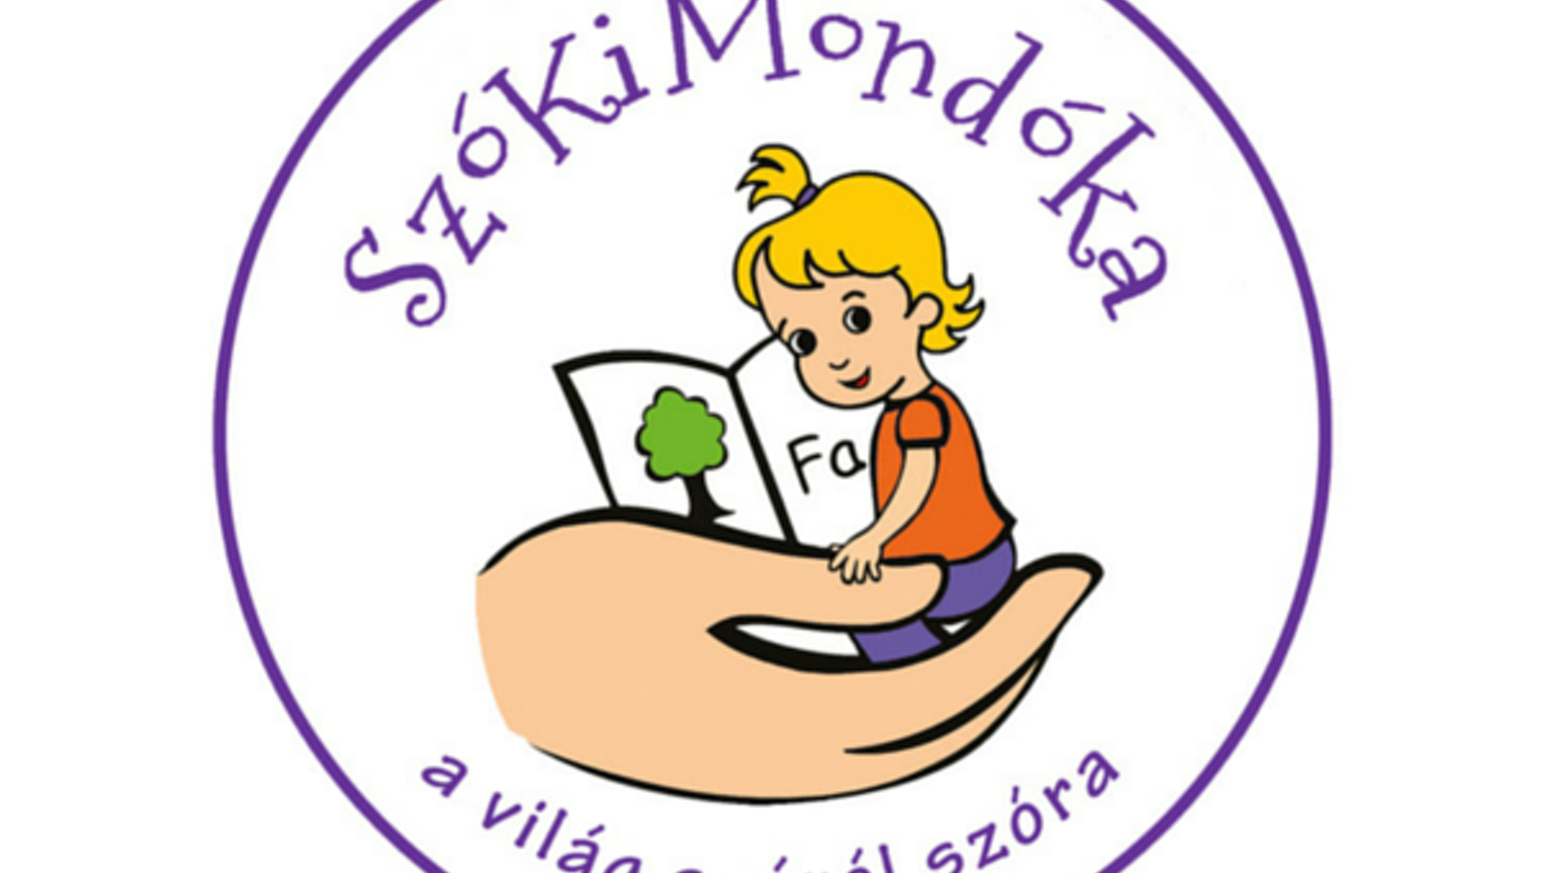 SzoKiMondoka is an educational system designed to excite children about the world around them through language & culture, word by word.